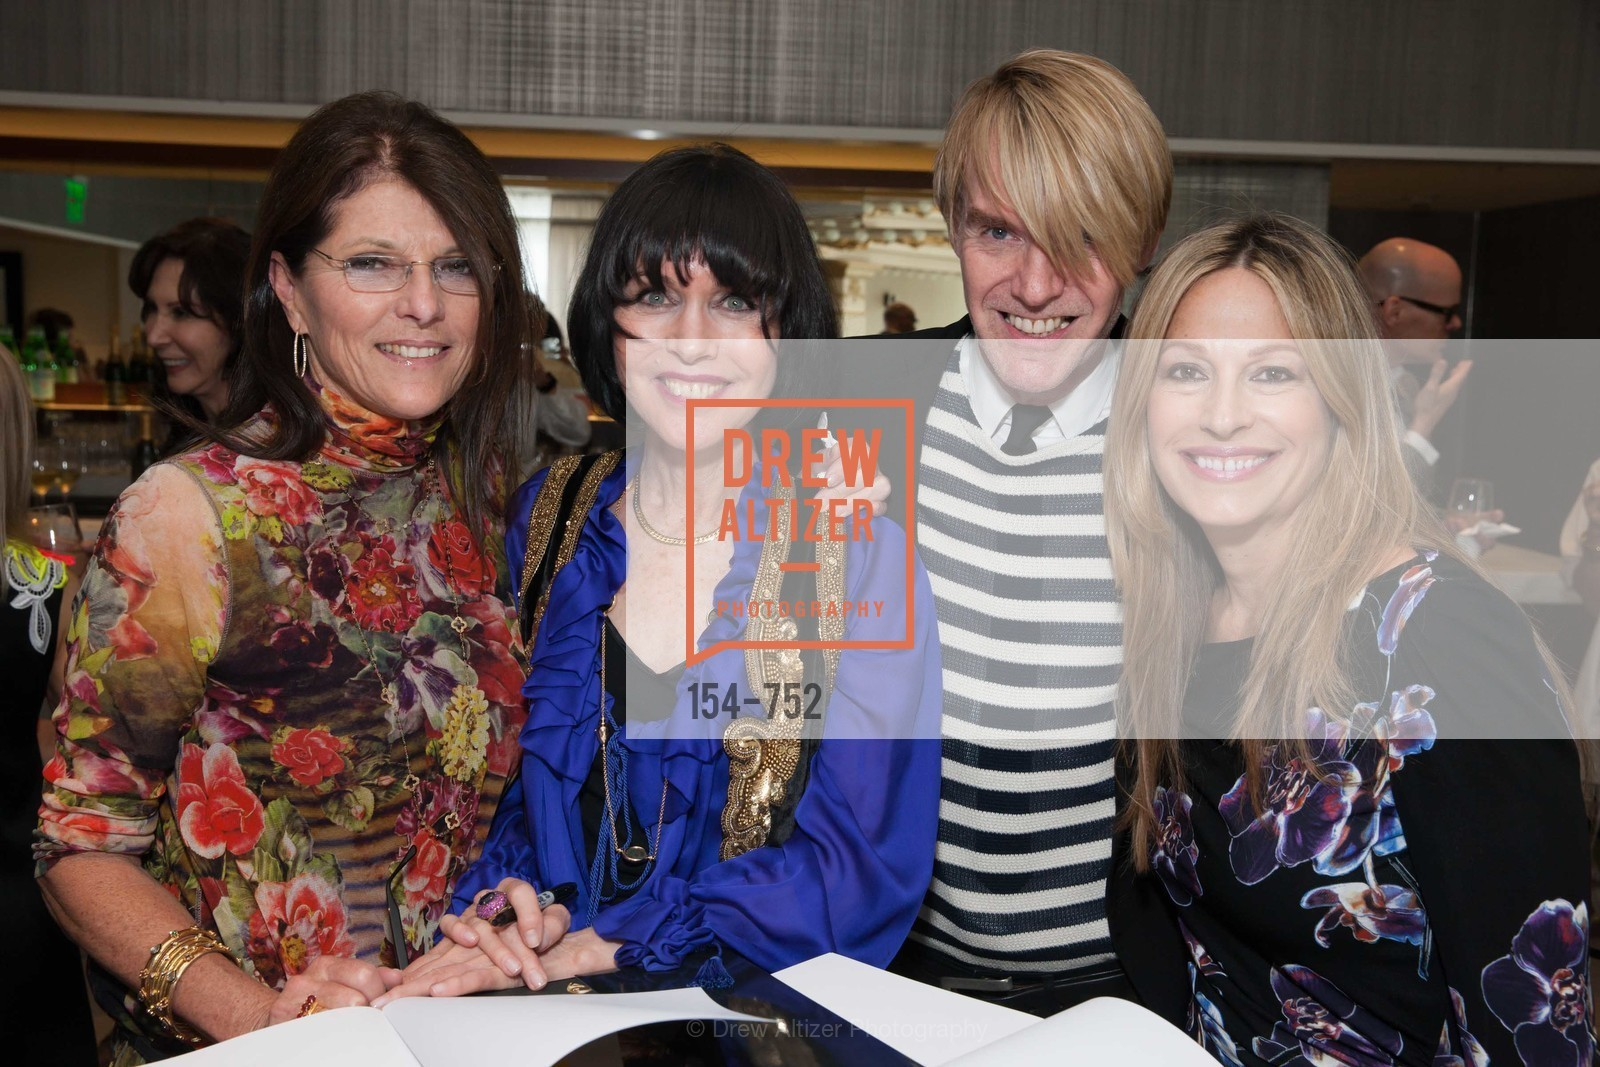 Lorrae Rominger, Christine Suppes, Ken Downing, Carolyne Zinko, Electric Fashion Book Signing with Christine Suppes & Ken Downing at THE ROTUNDA, NEIMAN MARCUS, US, May 27th, 2015,Drew Altizer, Drew Altizer Photography, full-service agency, private events, San Francisco photographer, photographer california